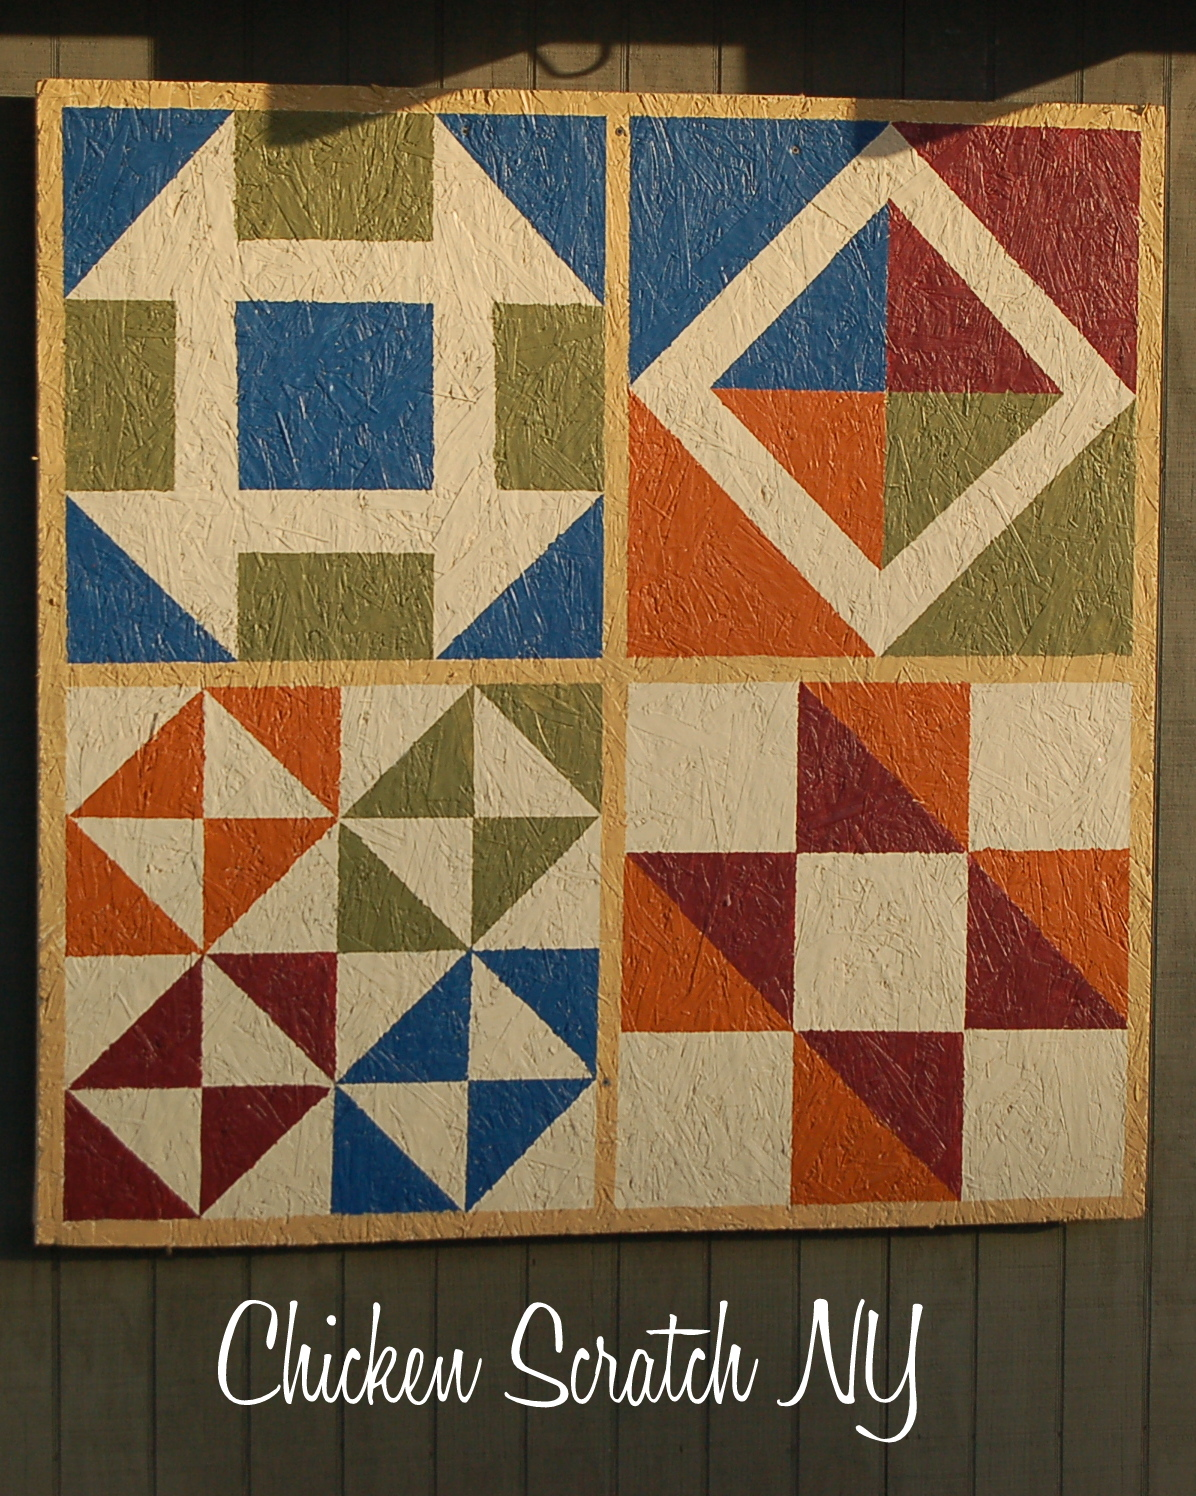 It's just a picture of Irresistible Printable Barn Quilt Patterns